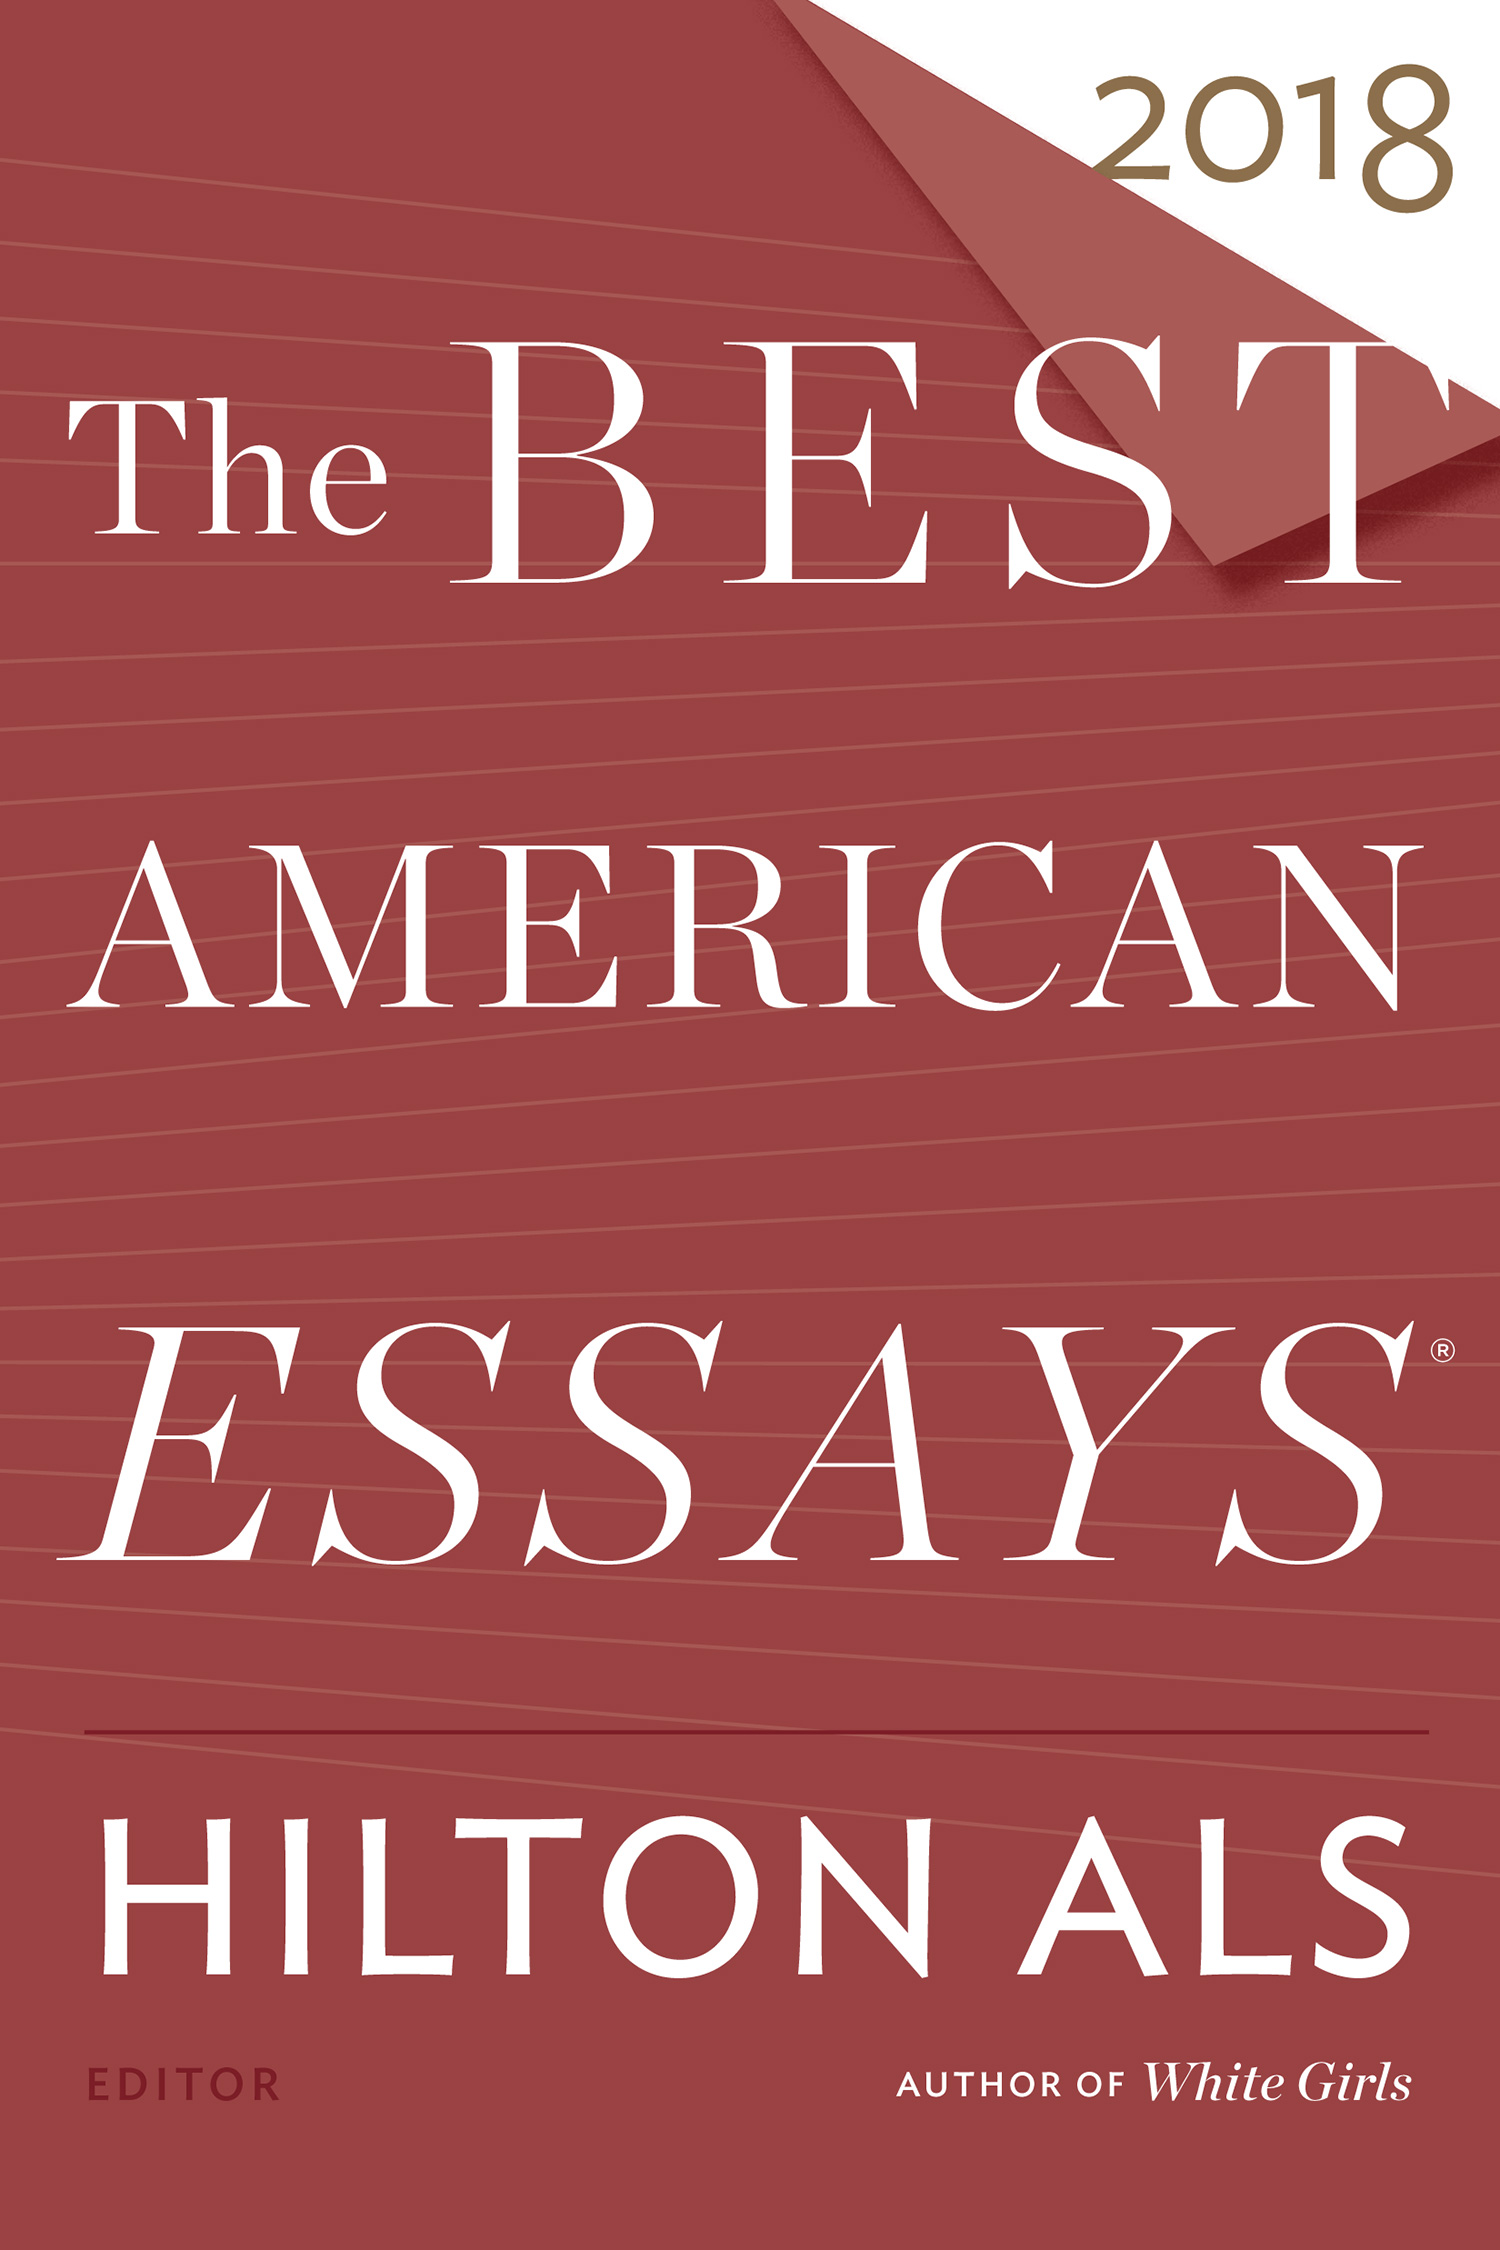 The Best American Essays 2018-9780544817340